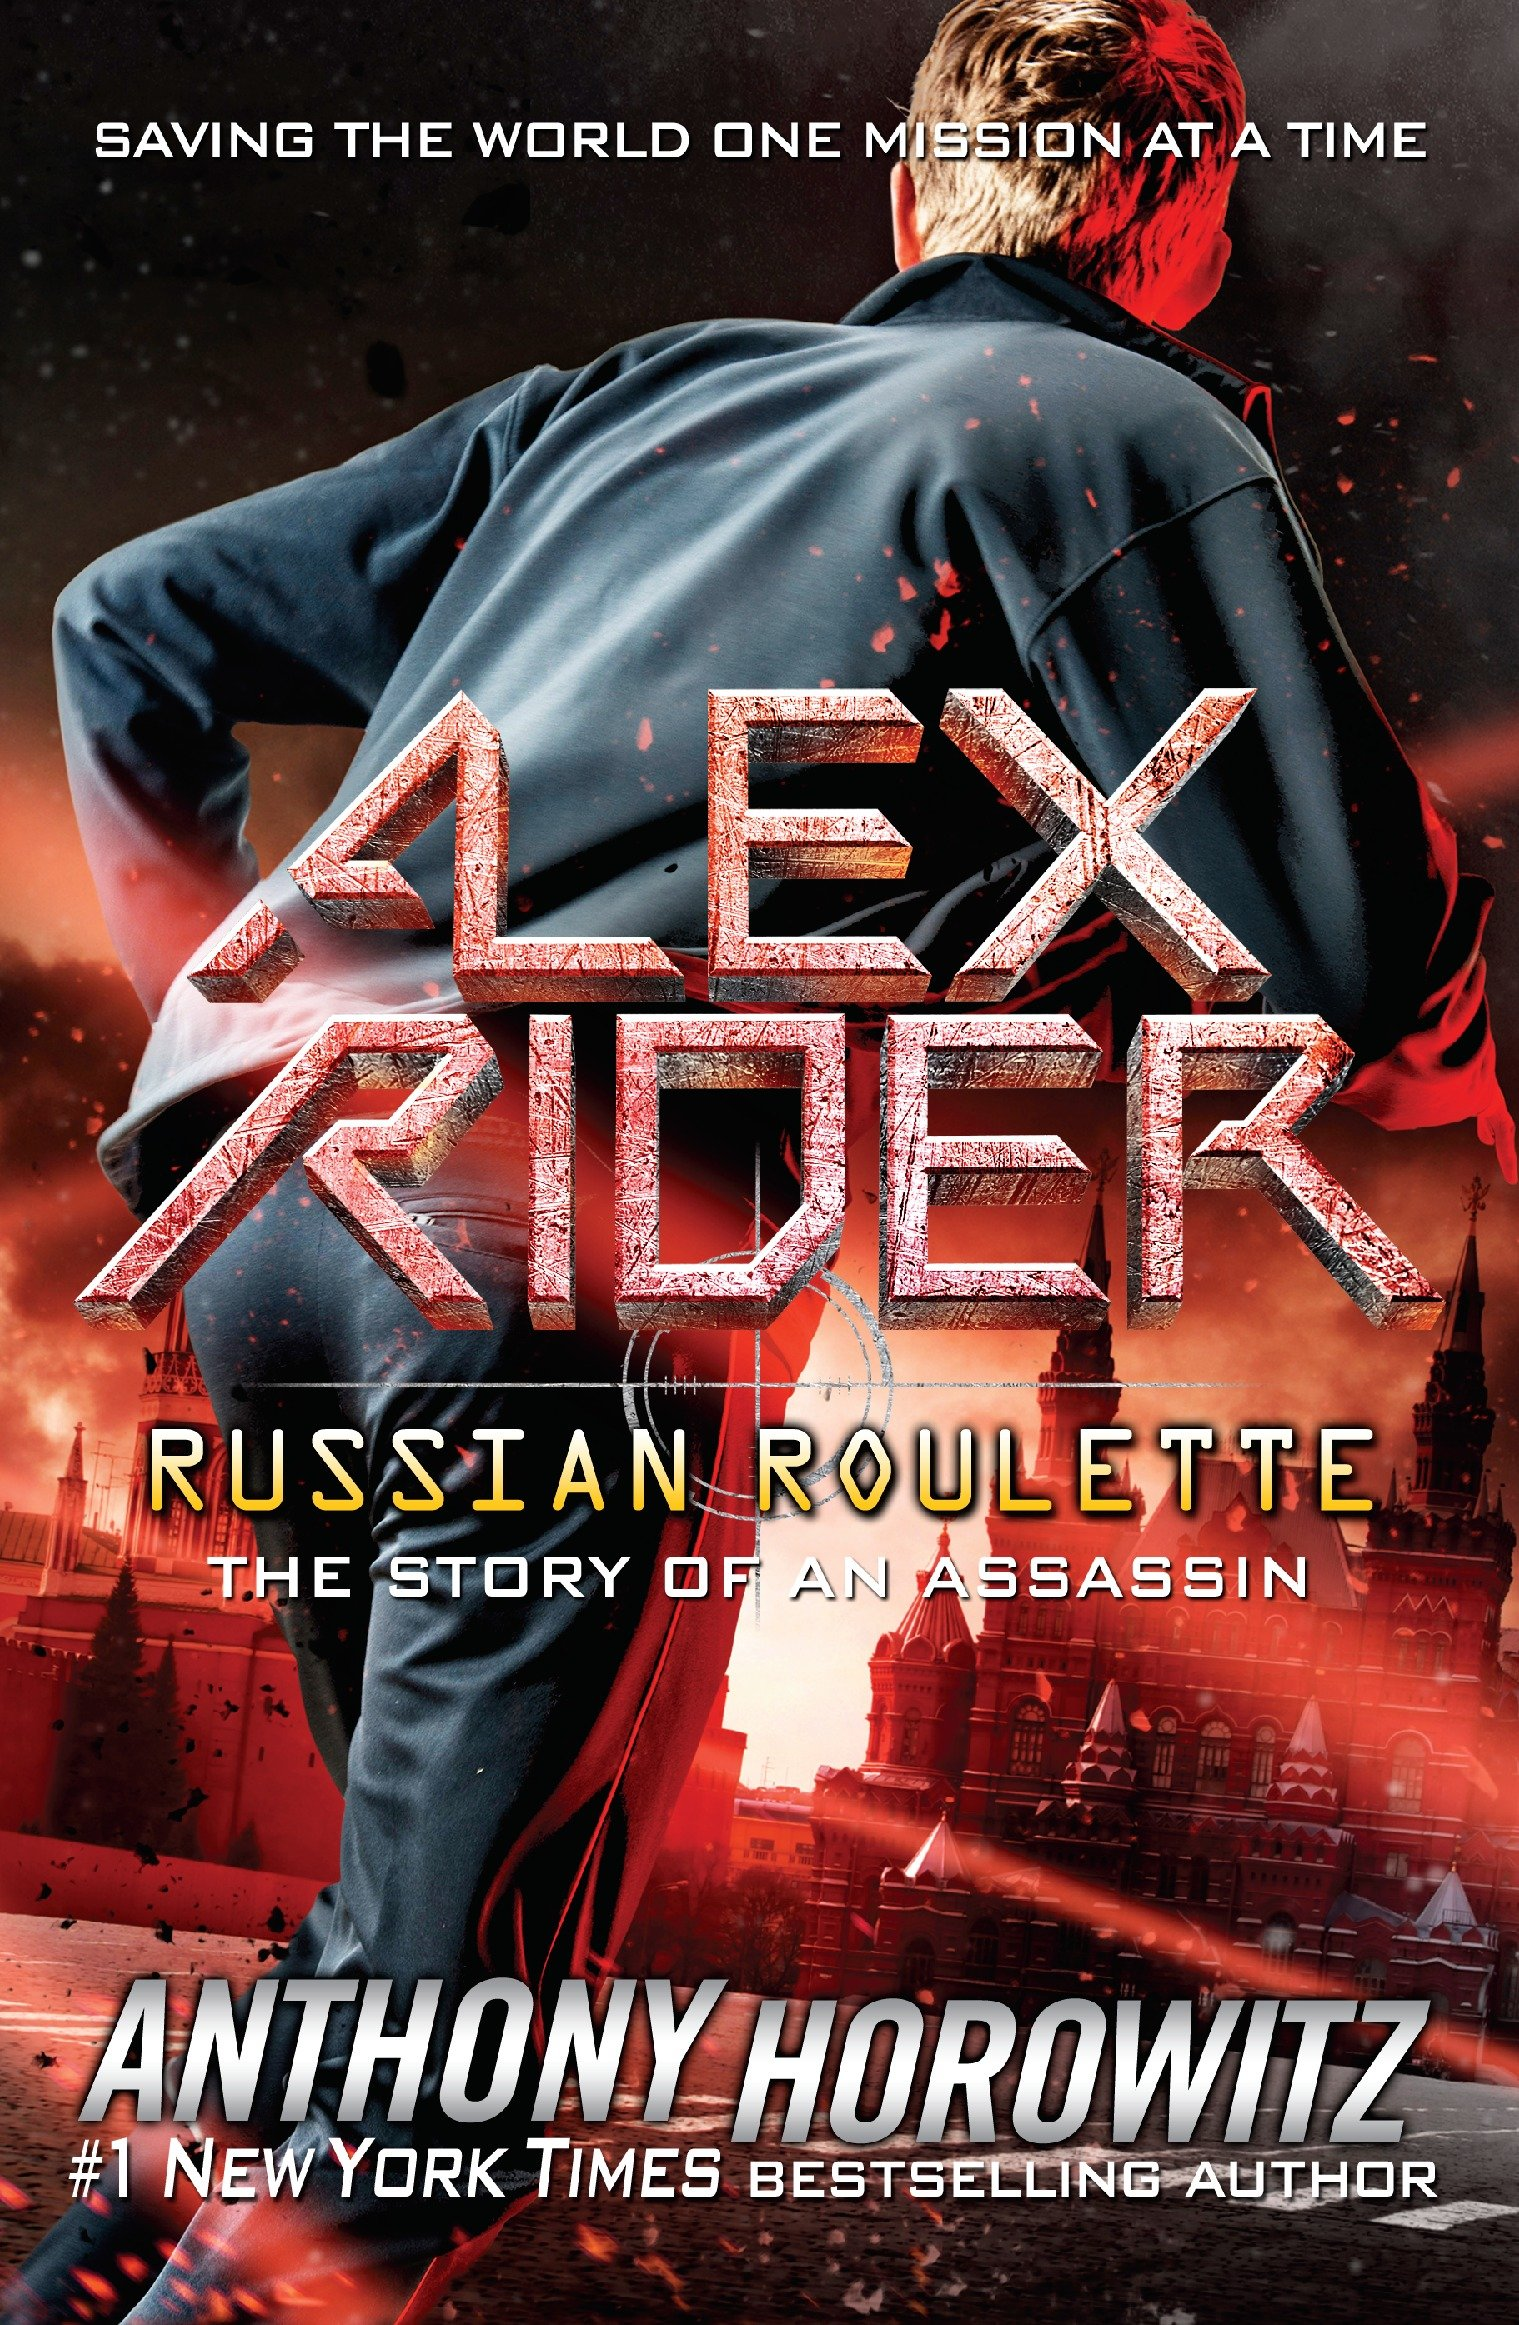 Russian roulette the story of an assassin cover image